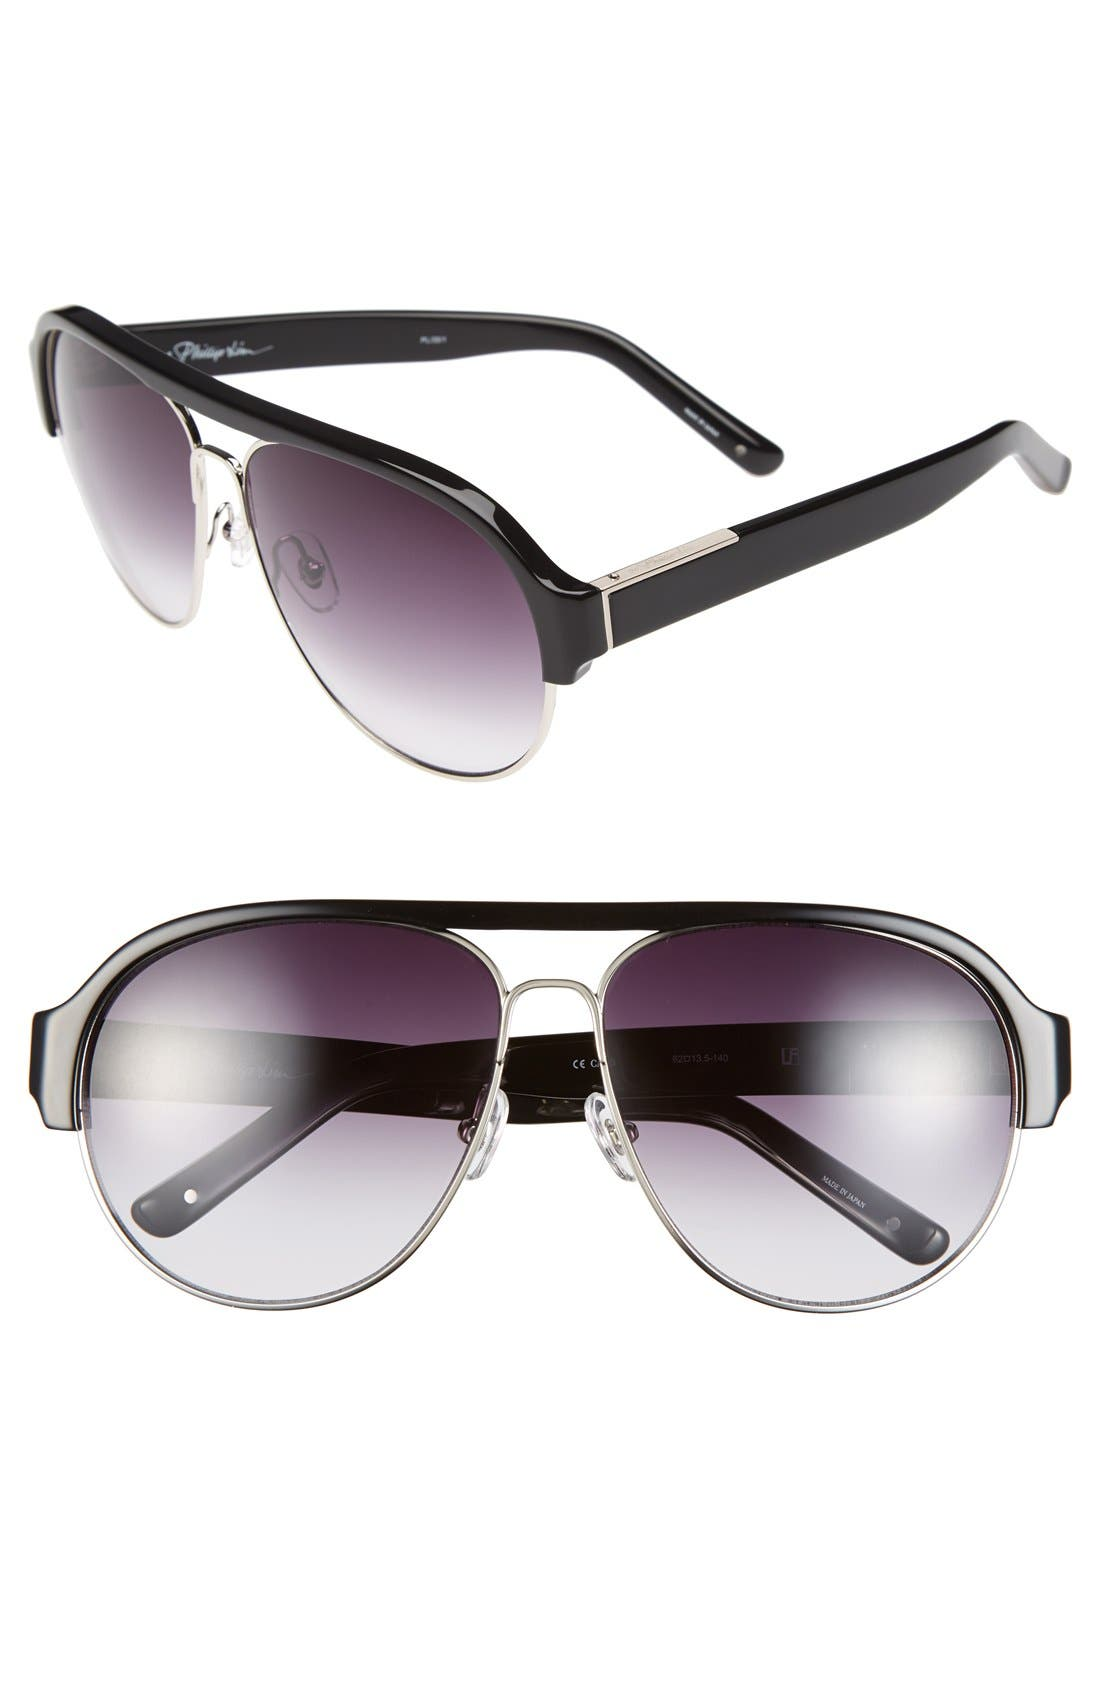 Main Image - 3.1 Phillip Lim 62mm Sunglasses